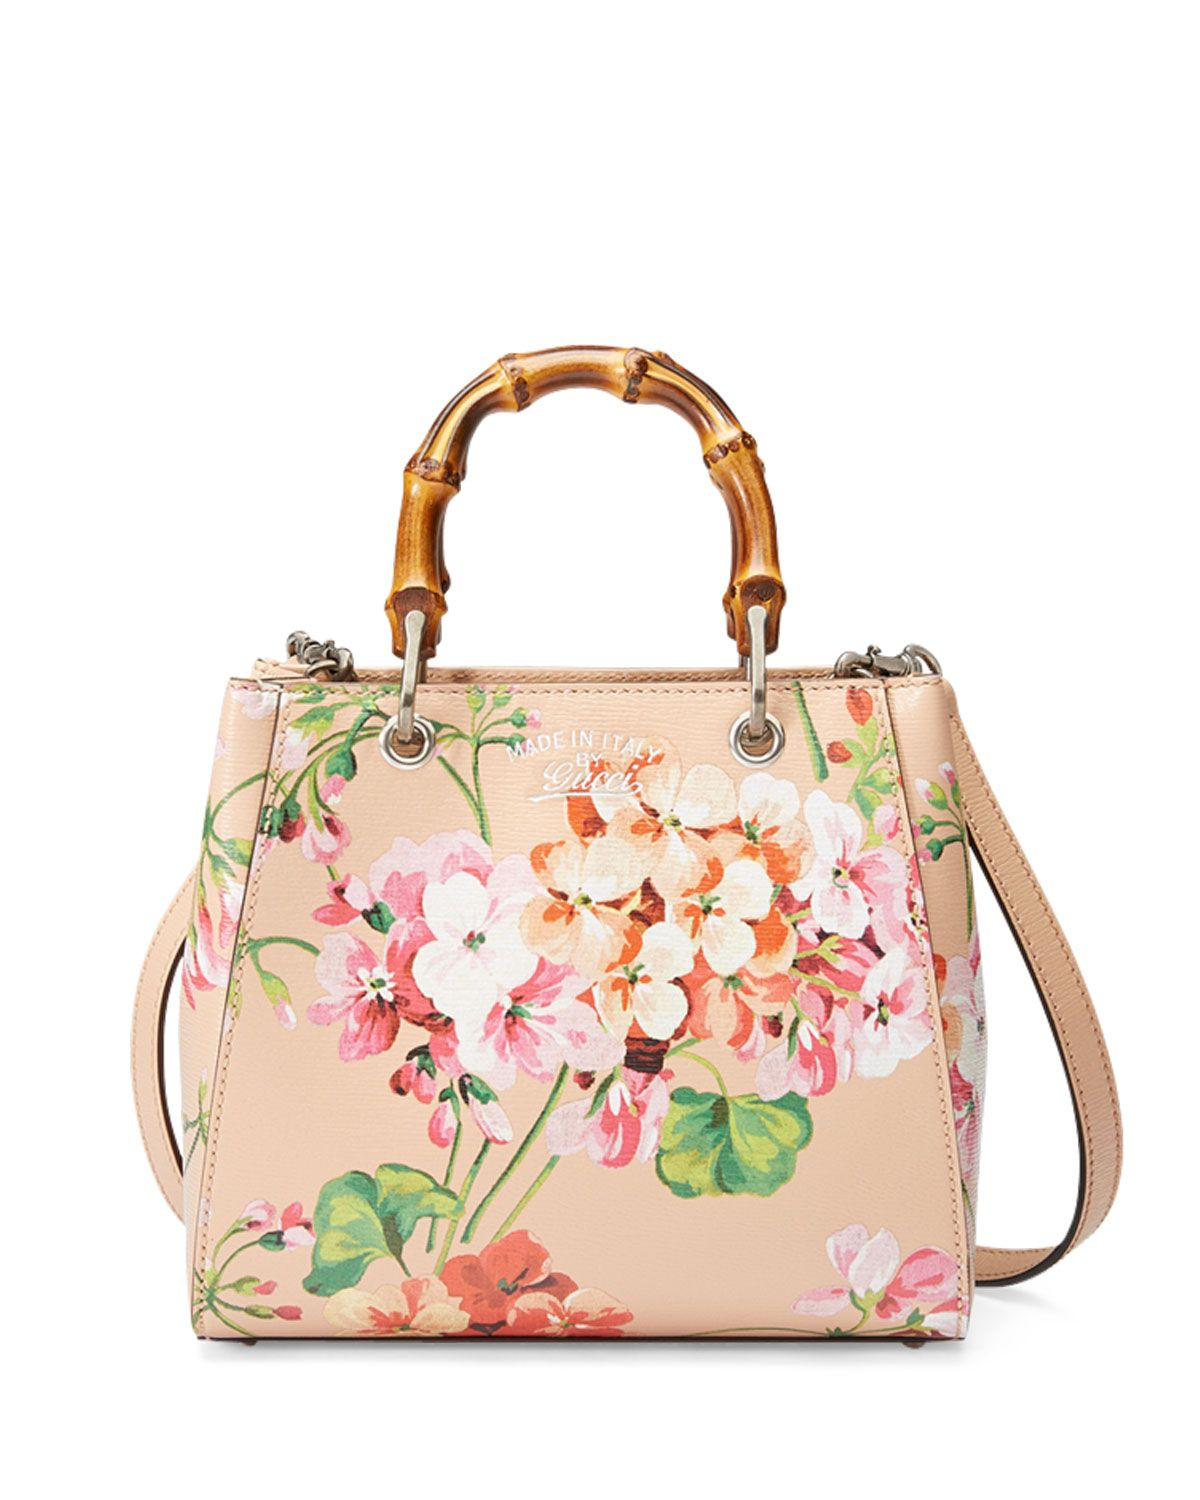 7306fa717f2b Gucci Bamboo Shopper Mini Blooms Crossbody Bag